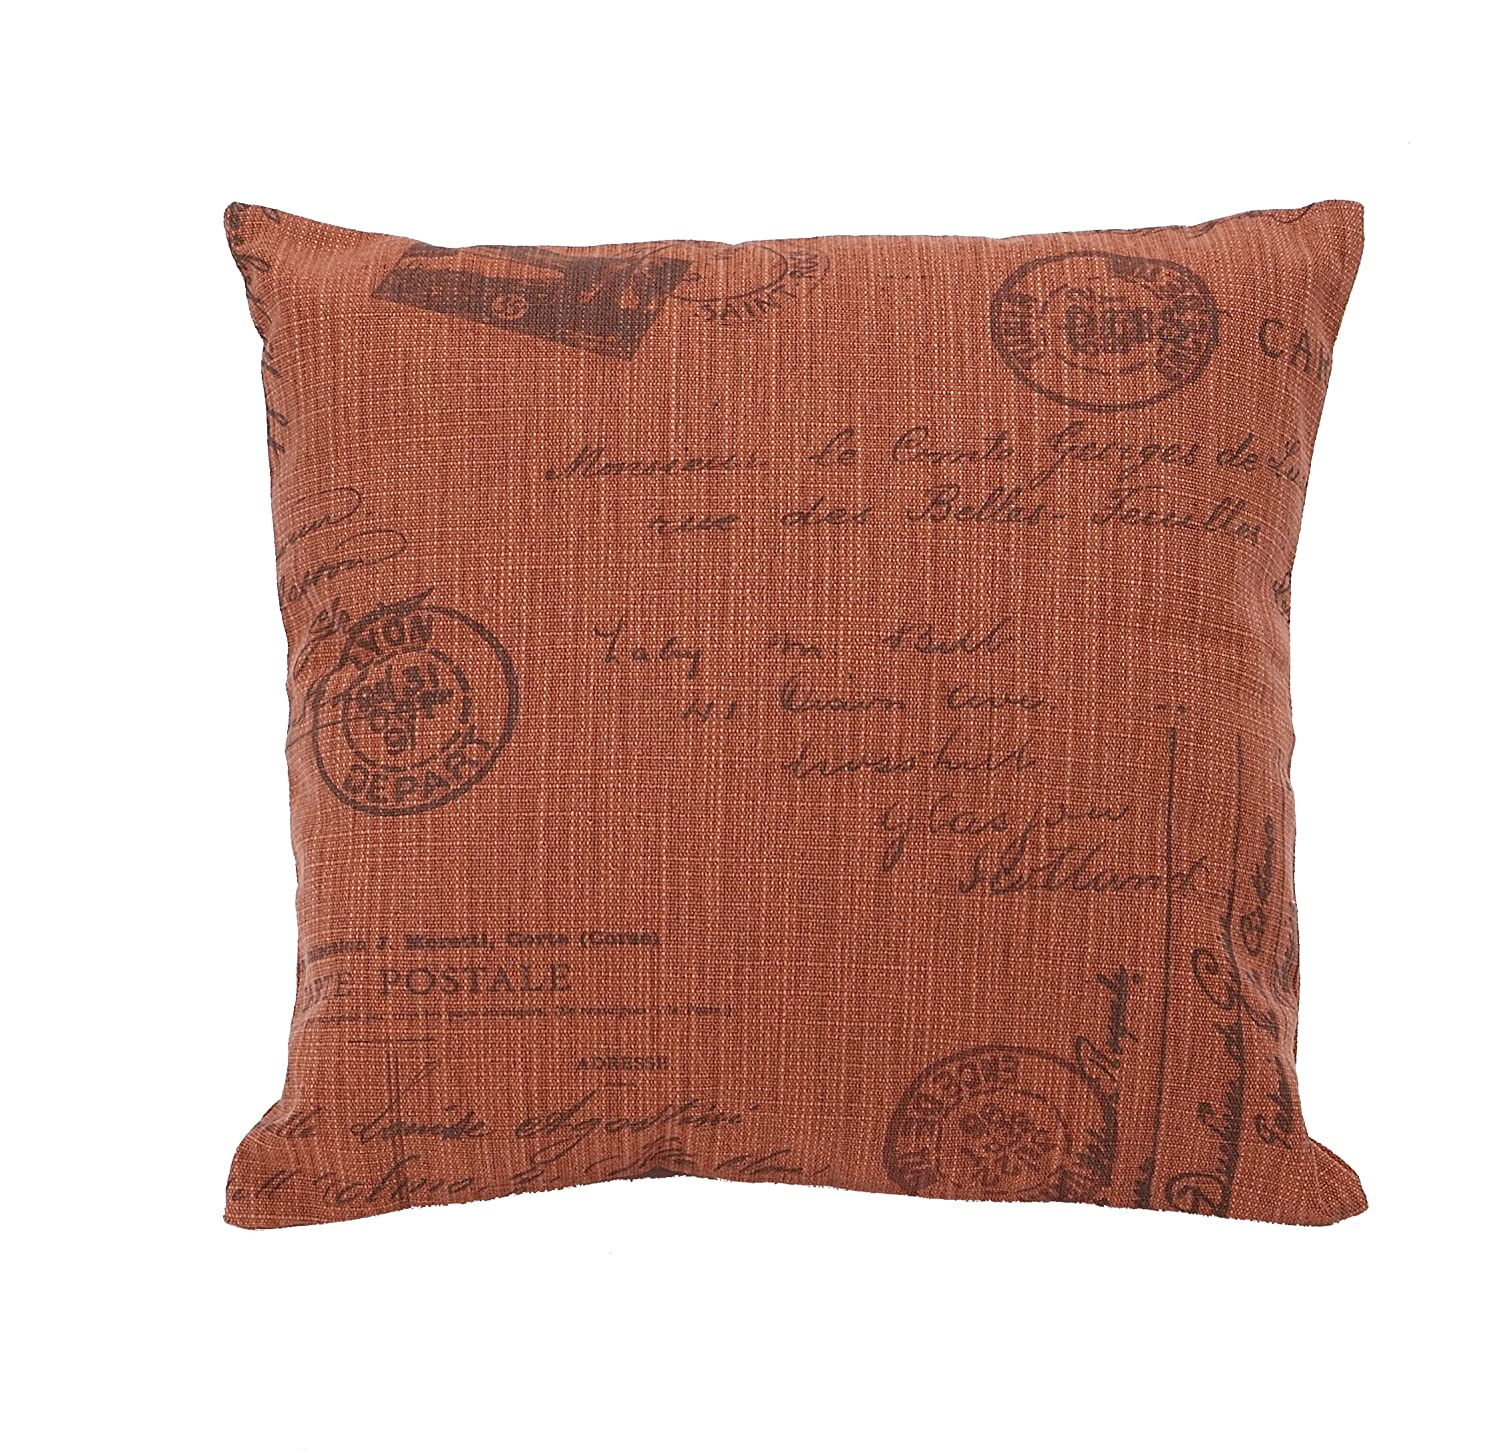 Plutus Brands Decorative Pillow Filling and Soft Fabric Cover UE0890